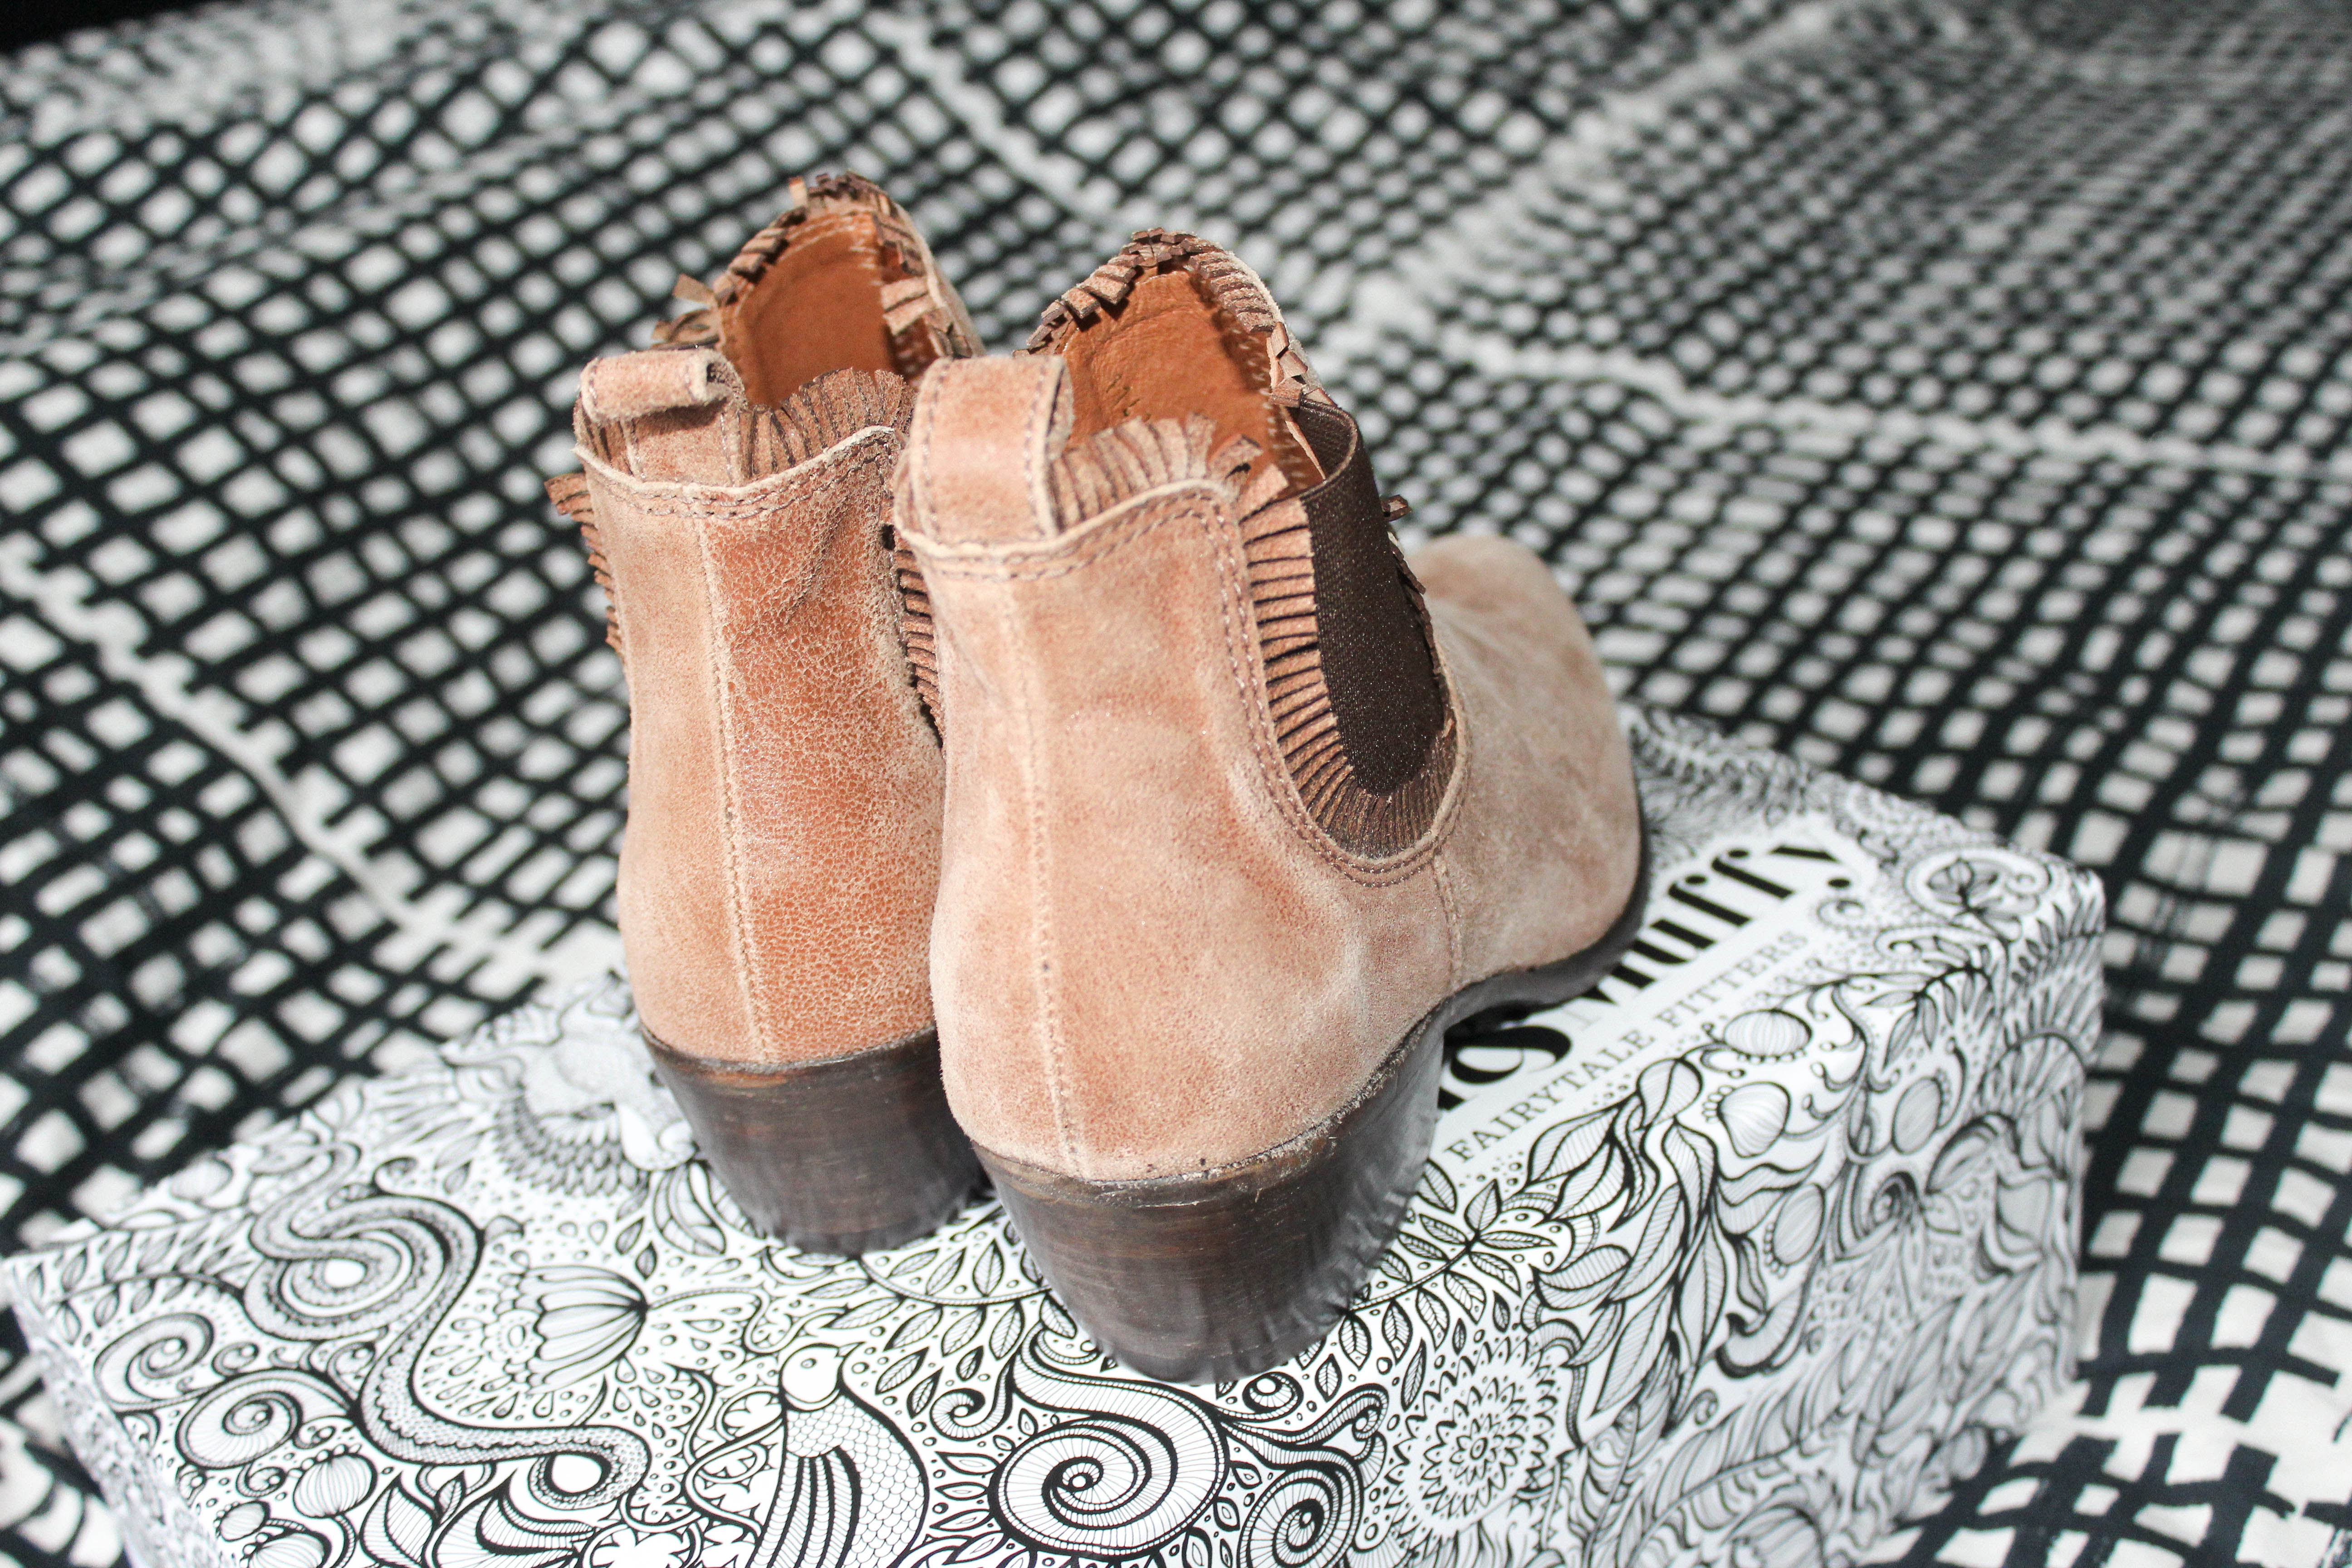 come-back-boots-ted-muffy-mademoisellevi-7